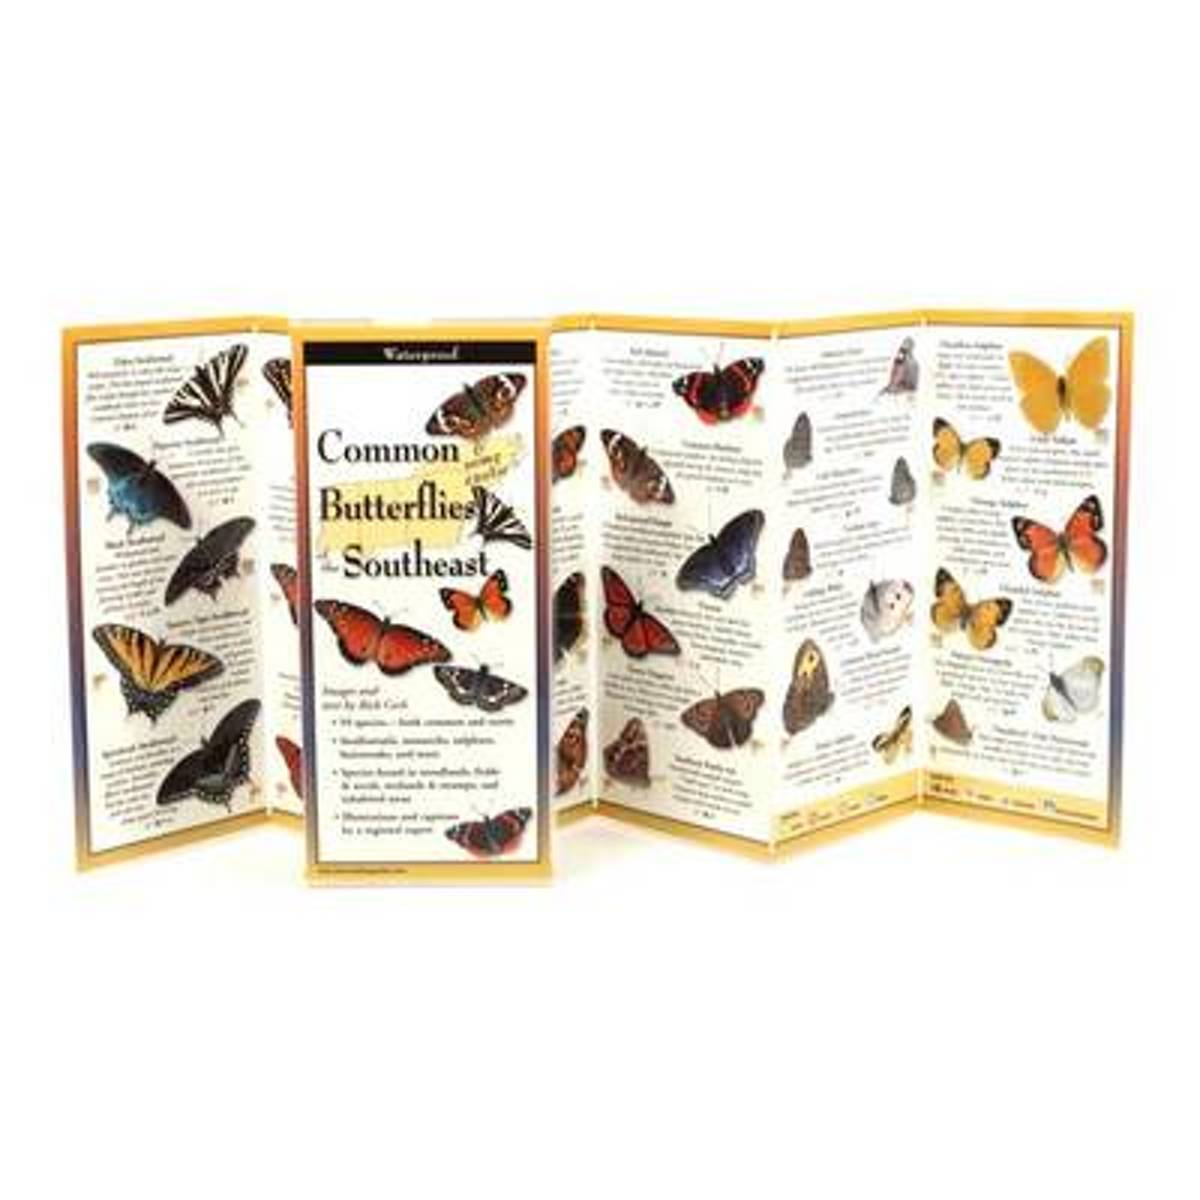 Common Butterflies of the Southeast